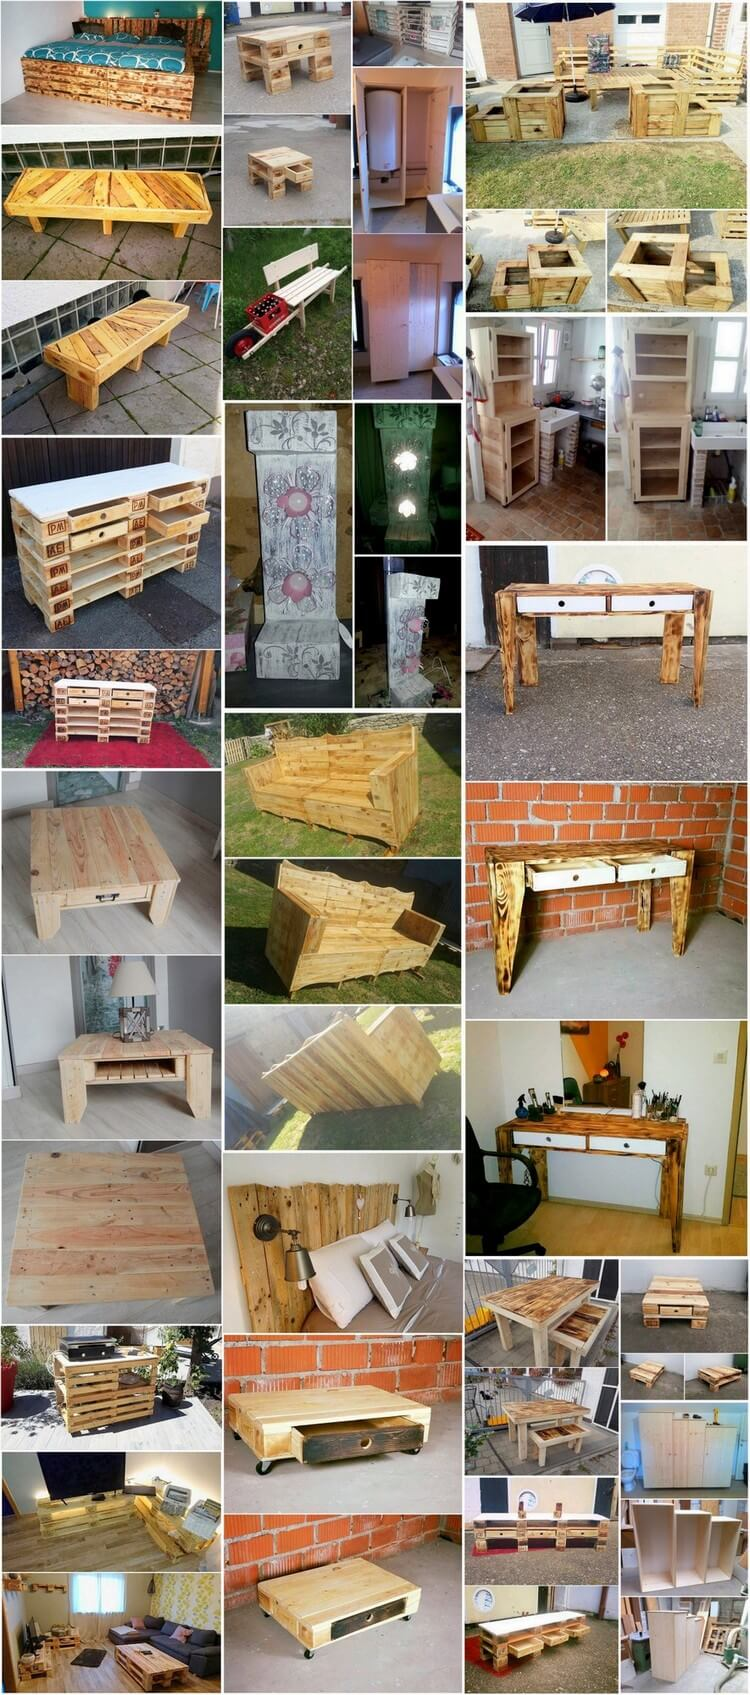 Latest Trends to Recycle Used Shipping Pallets